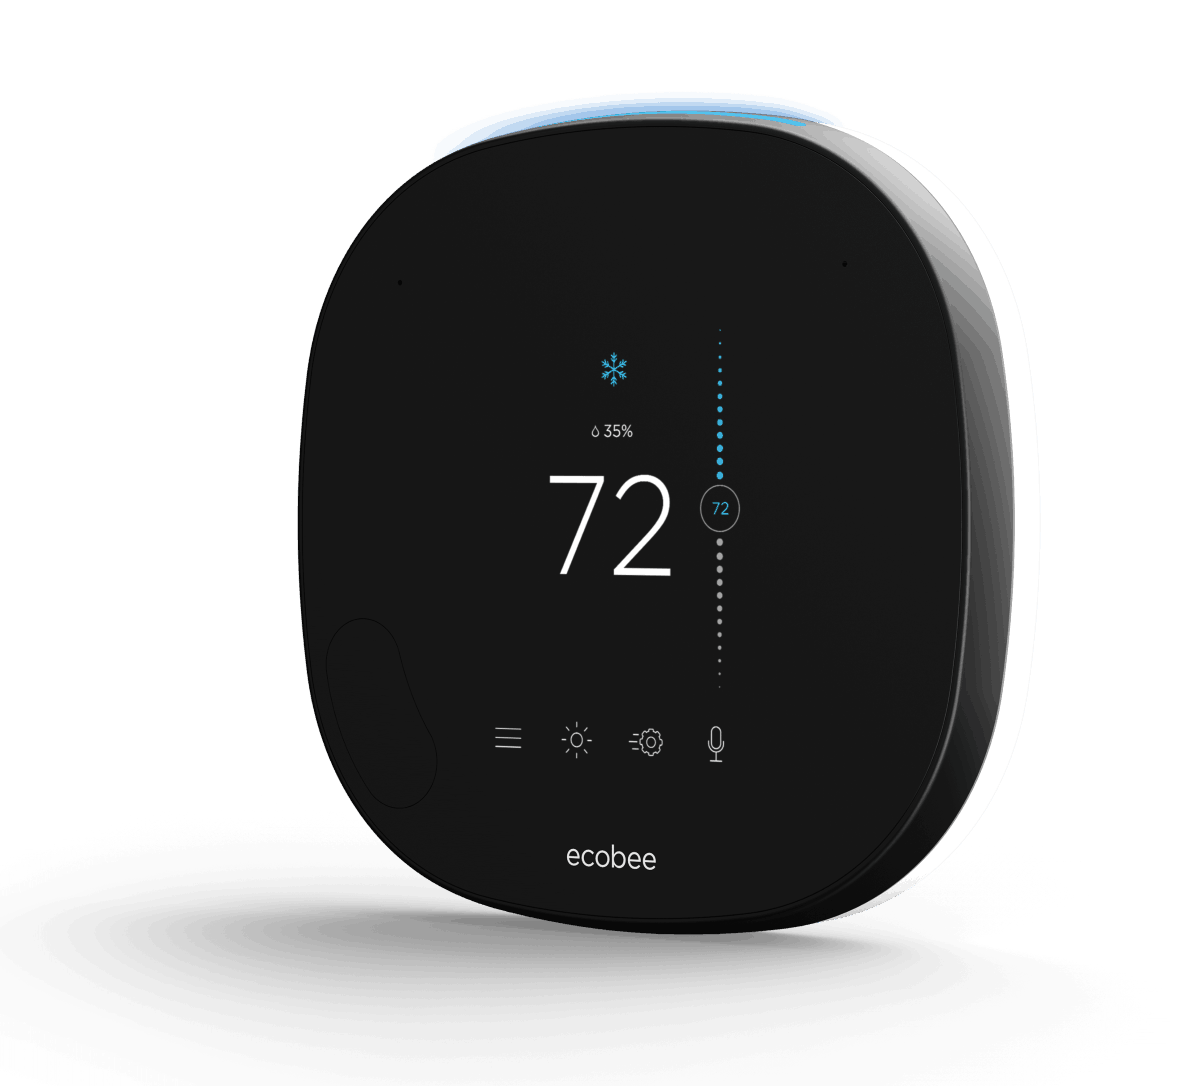 A marketing image of the 2019 ecobee SmartThermostat black model with the temperature being displayed on screen.